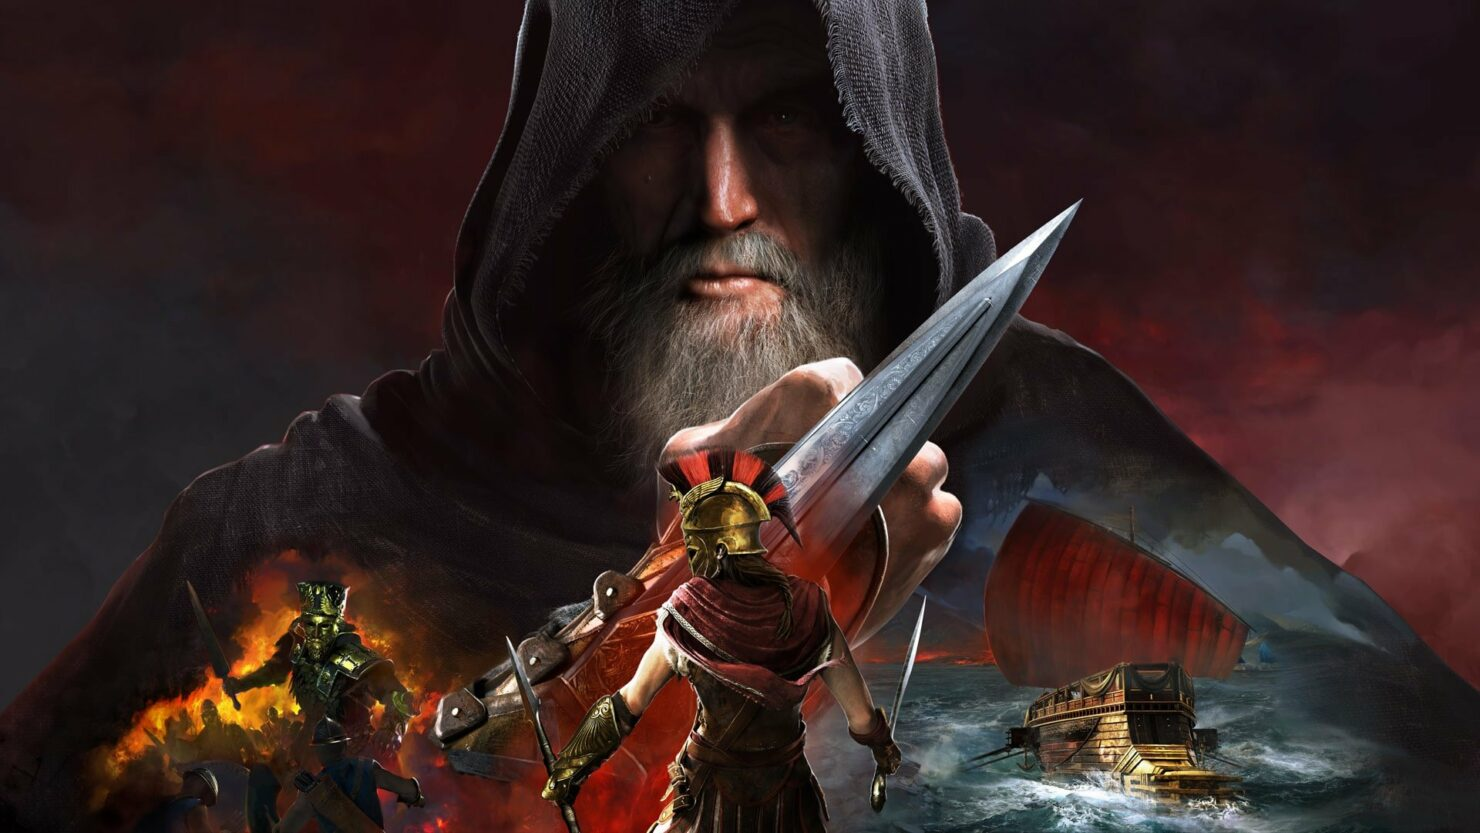 AC Odyssey Patch 1.1.0 legacy of the first blade dlc patch 1.1.1